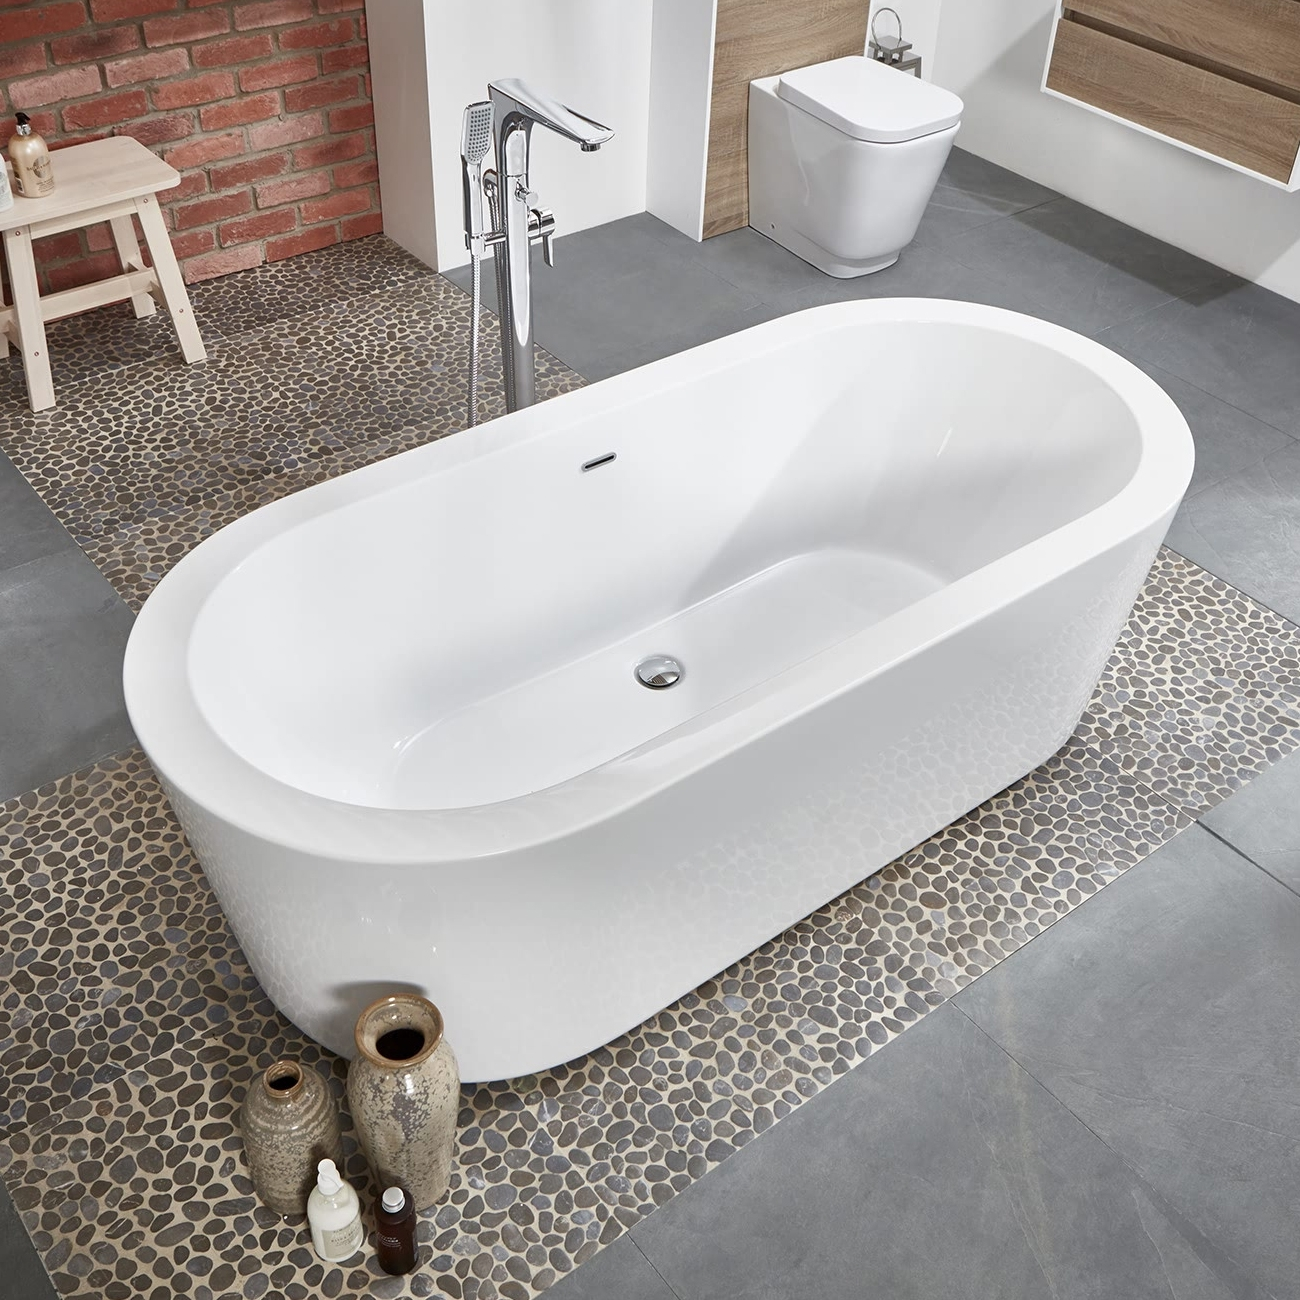 Verona Rondo Freestanding Double Ended Bath 1680mm x 780mm - White-1